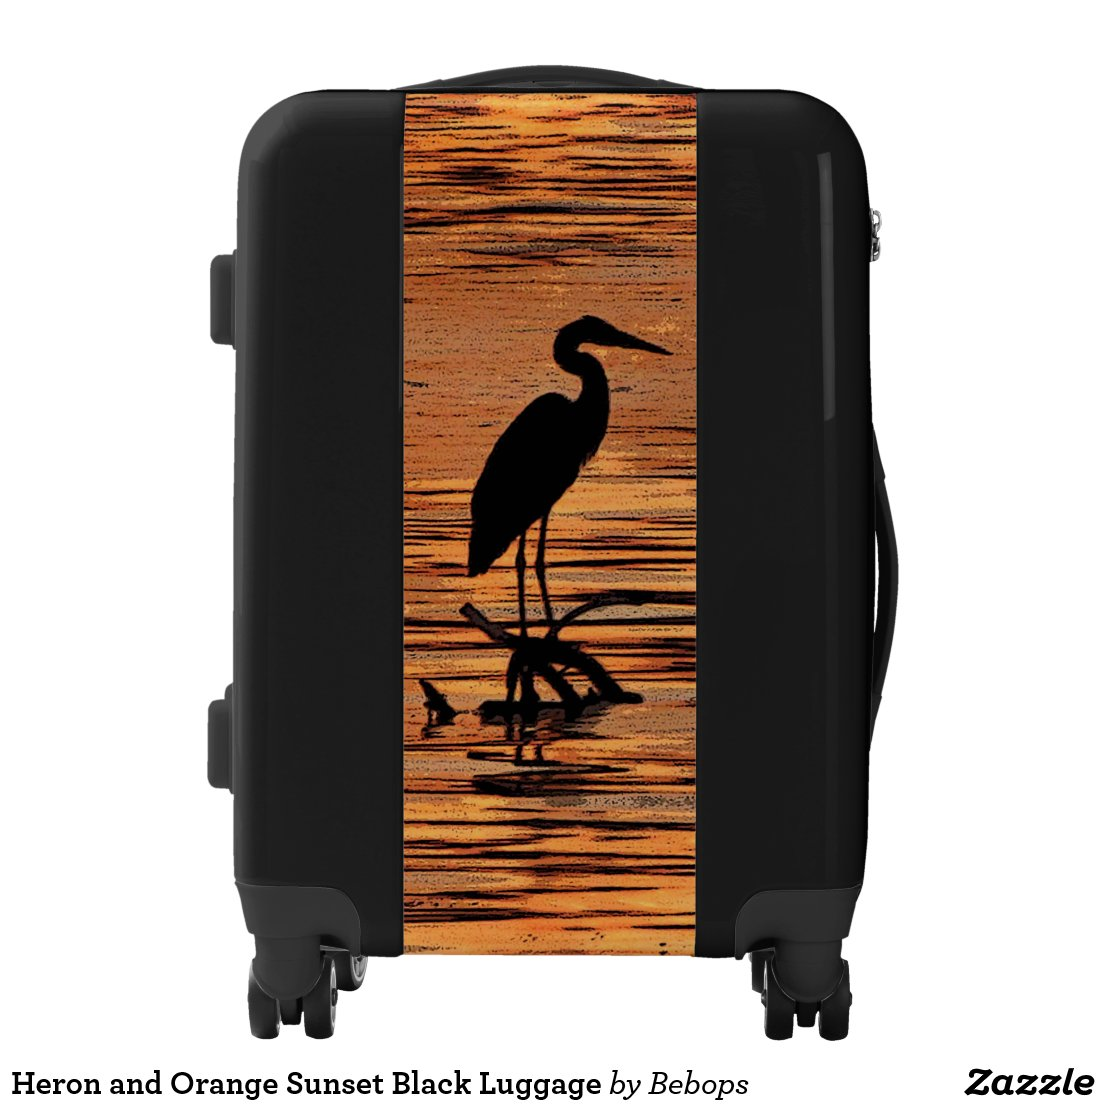 Heron and Orange Sunset Black Luggage